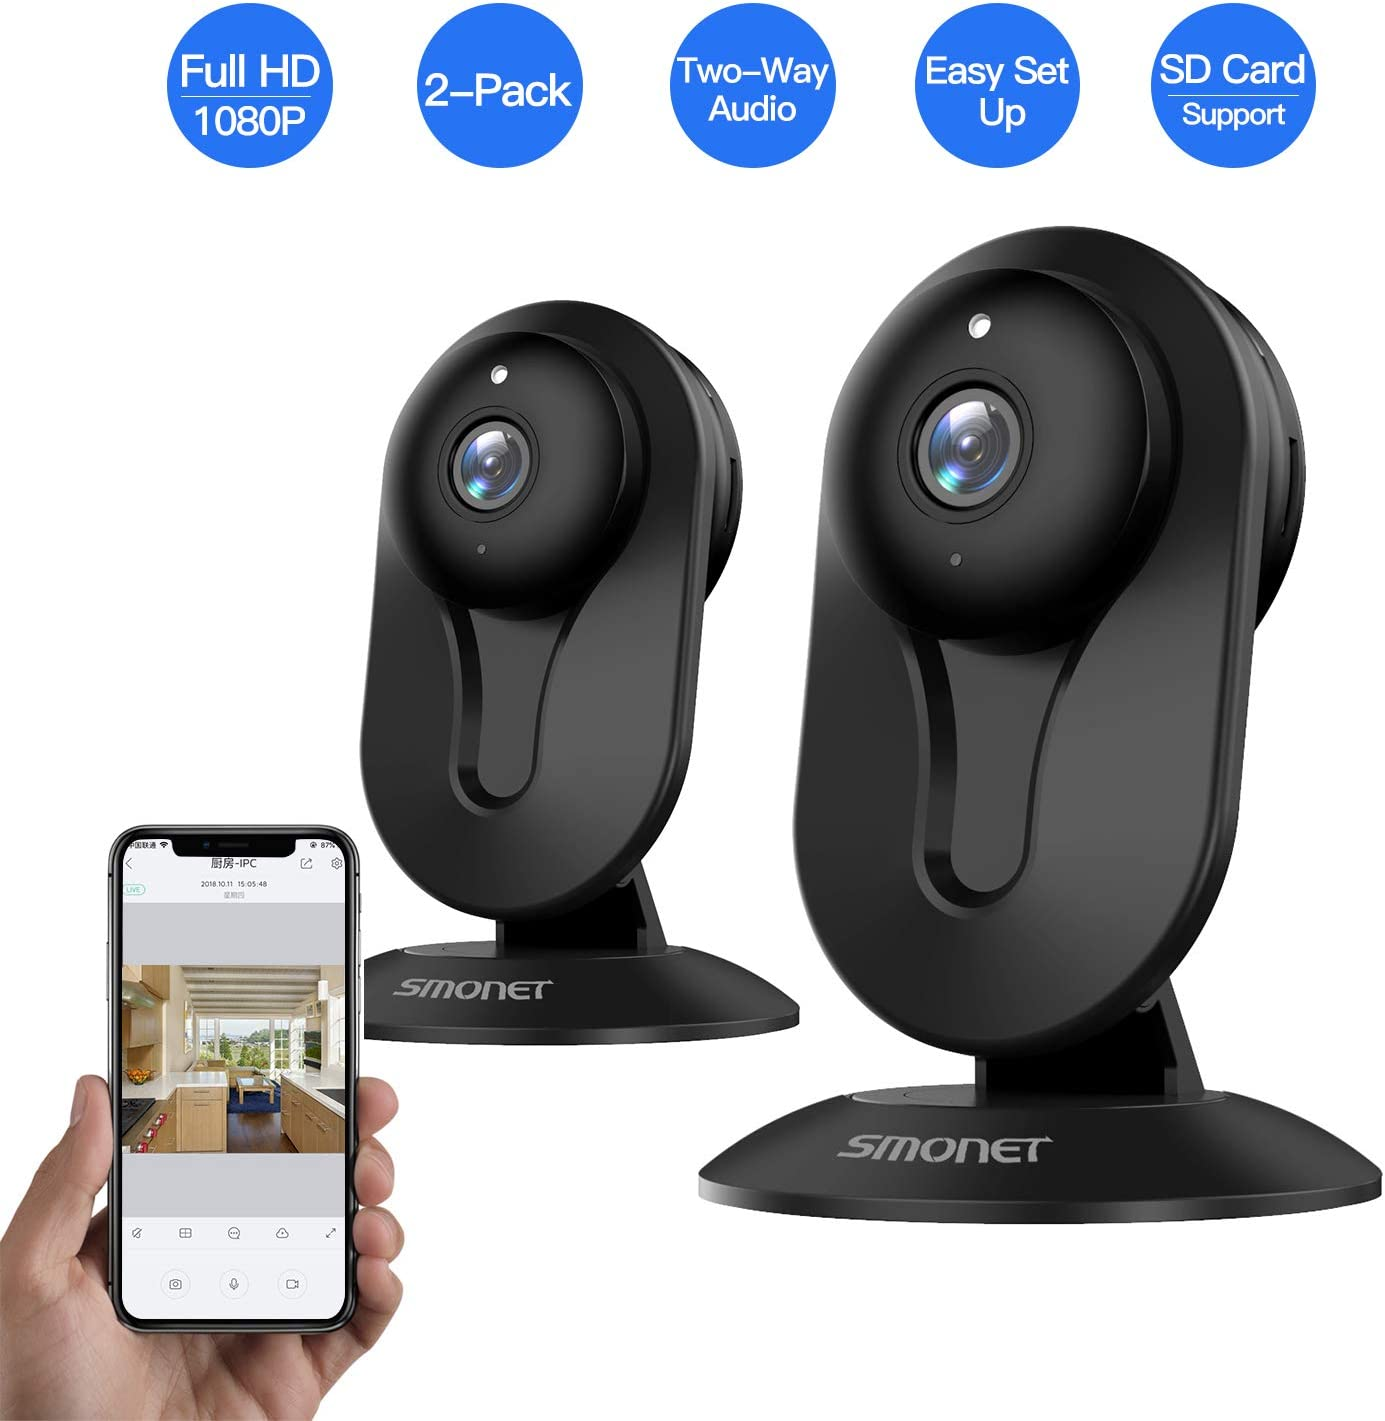 SMONET Security Camera Wireless, Home Security IP Camera with Two-Way Audio, Night Vision, Full HD 1080P 2.0 Mega-Pixel Indoor Surveillance Camera for Elder Baby Nanny Pet Monitor Black, 2 Packs